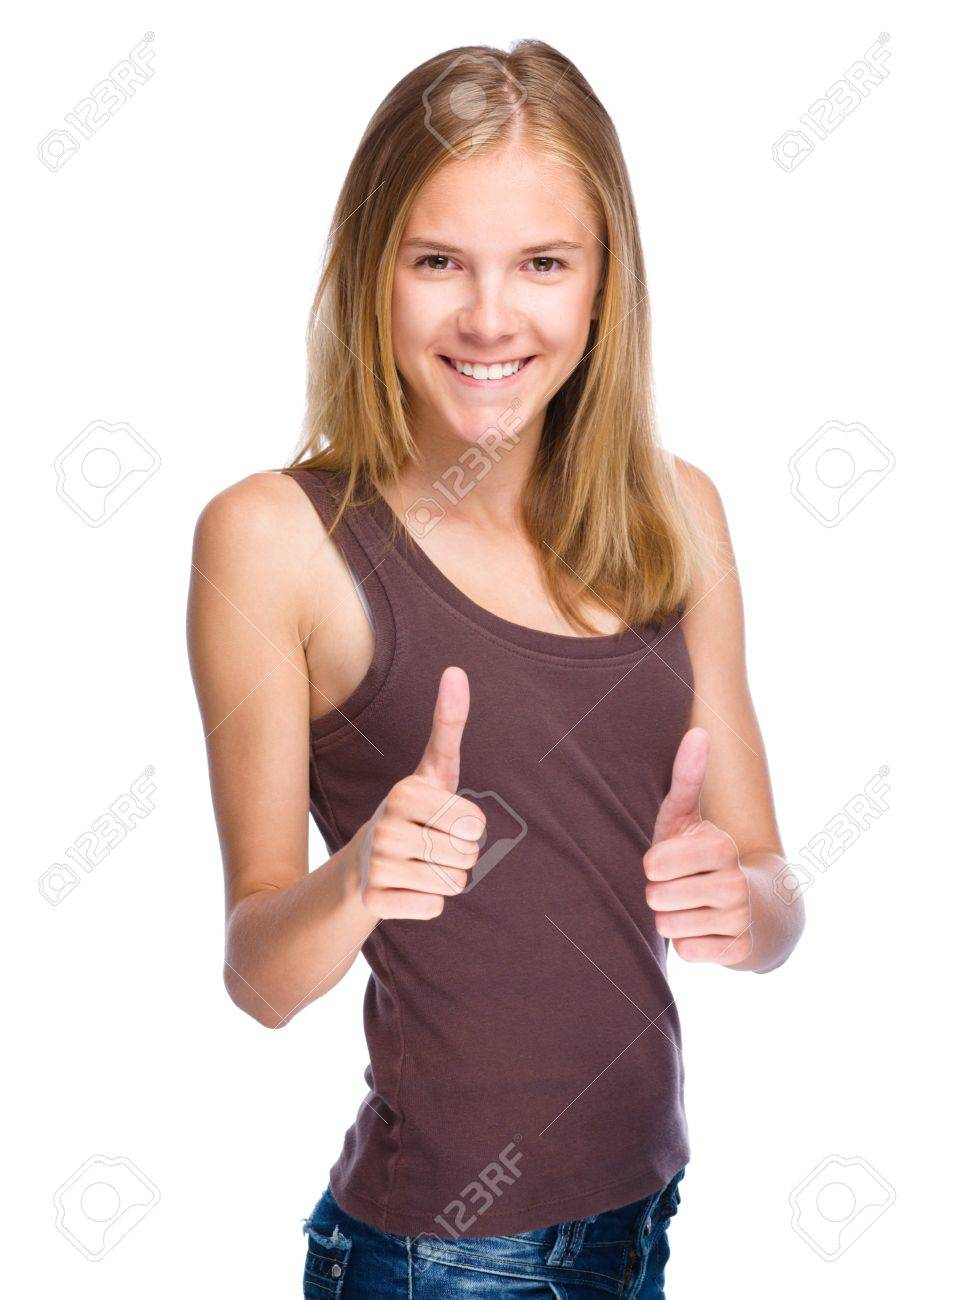 Young girl is showing thumb up gesture using both hands, isolated over white Stock Photo - 21000351